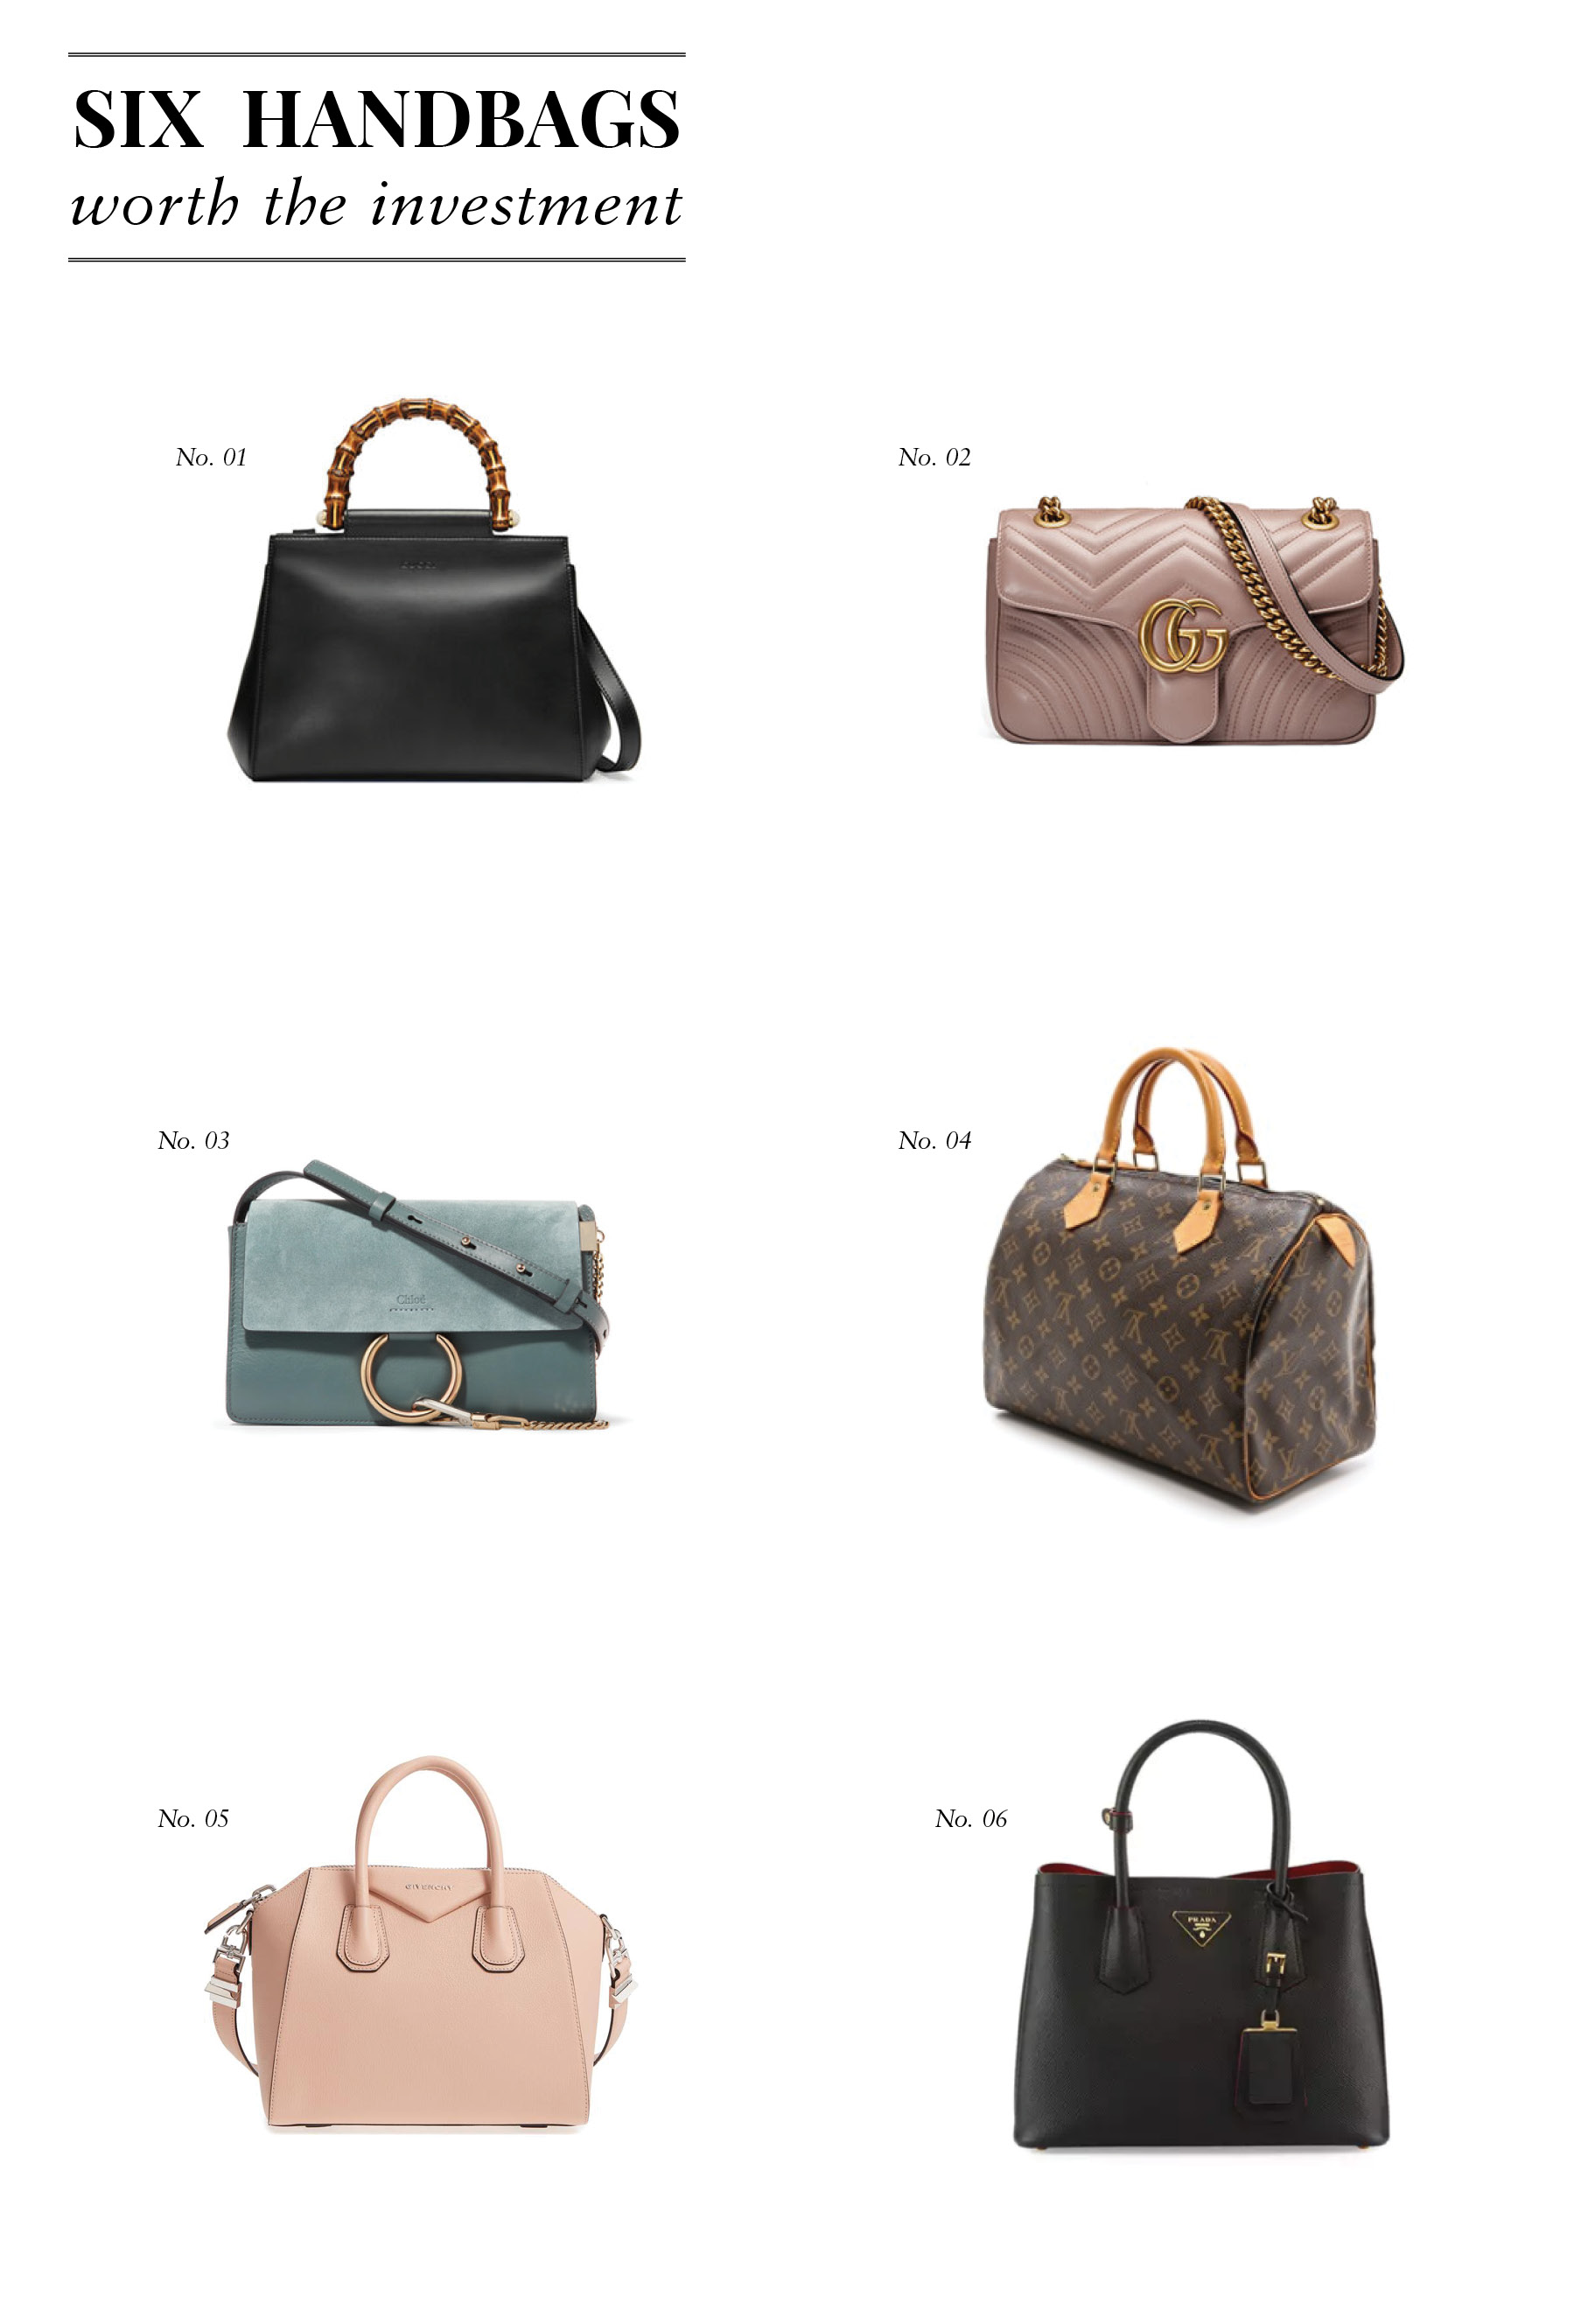 102e28bbad02 Six Handbags Worth the Investment — Hello Adams Family